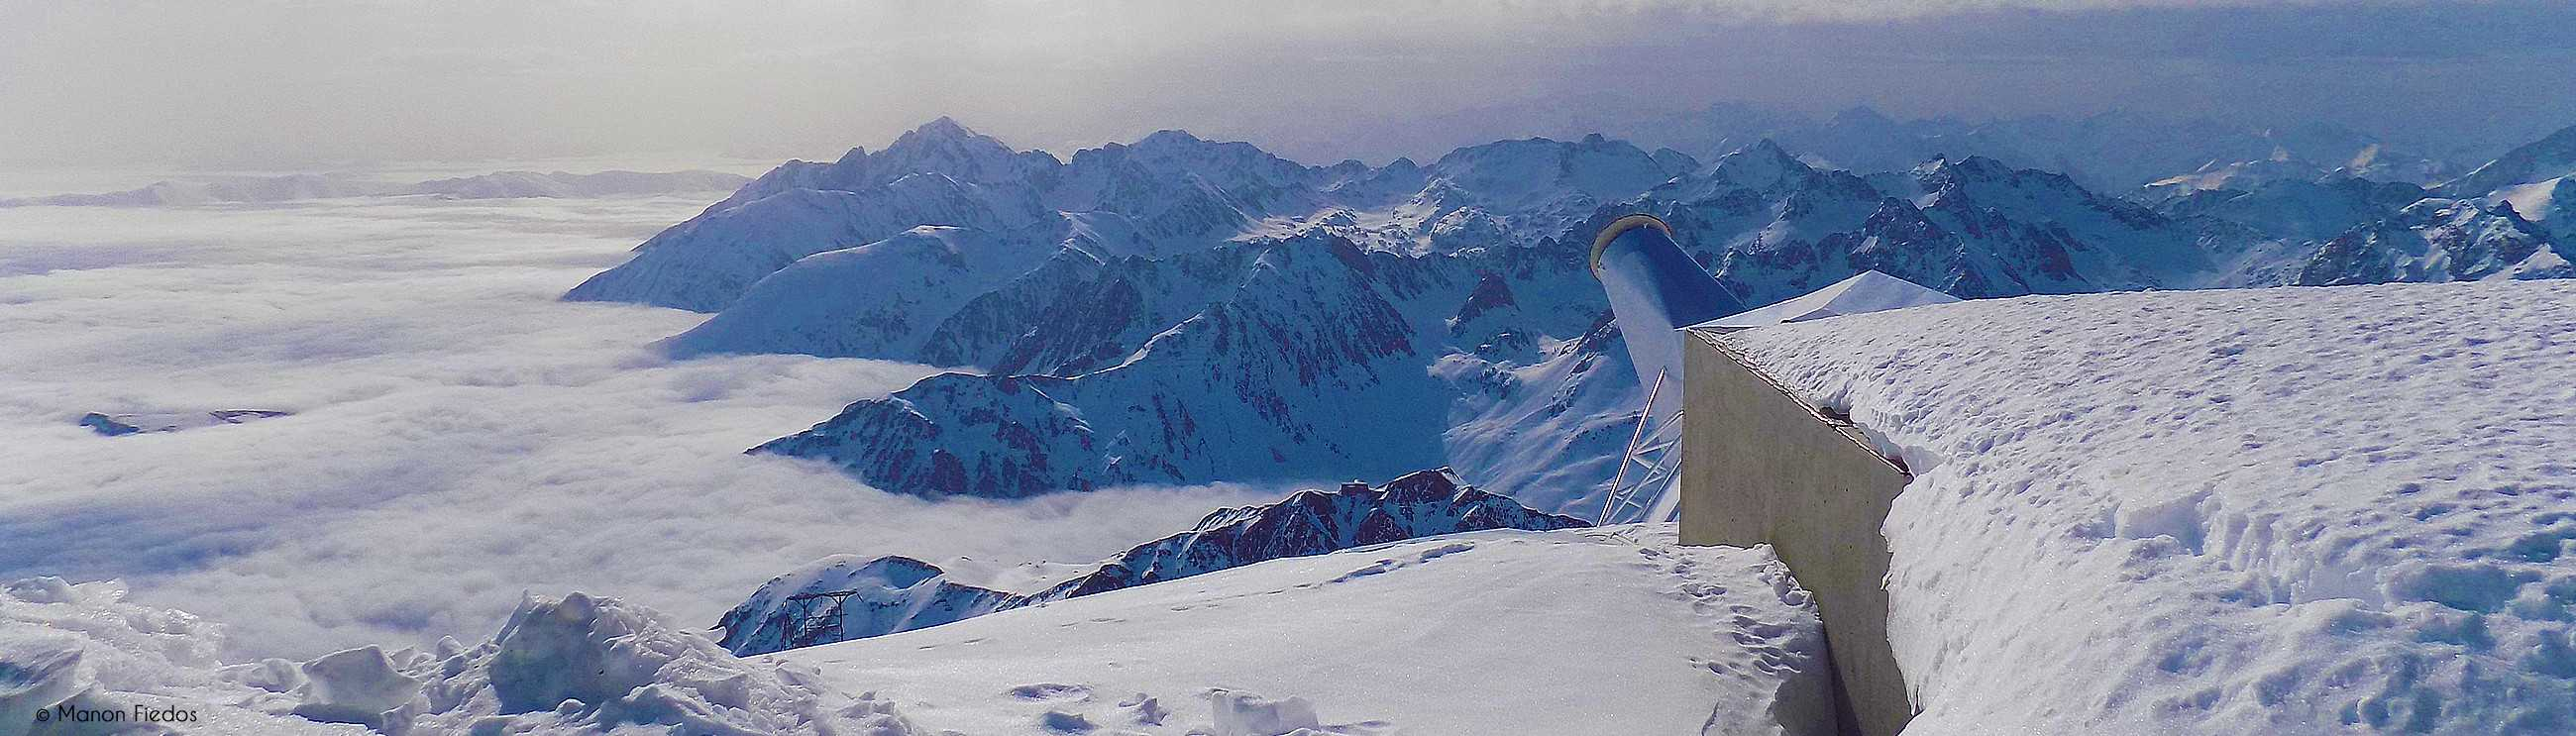 Landscape seen from the Pic du Midi by Manon Fiedos